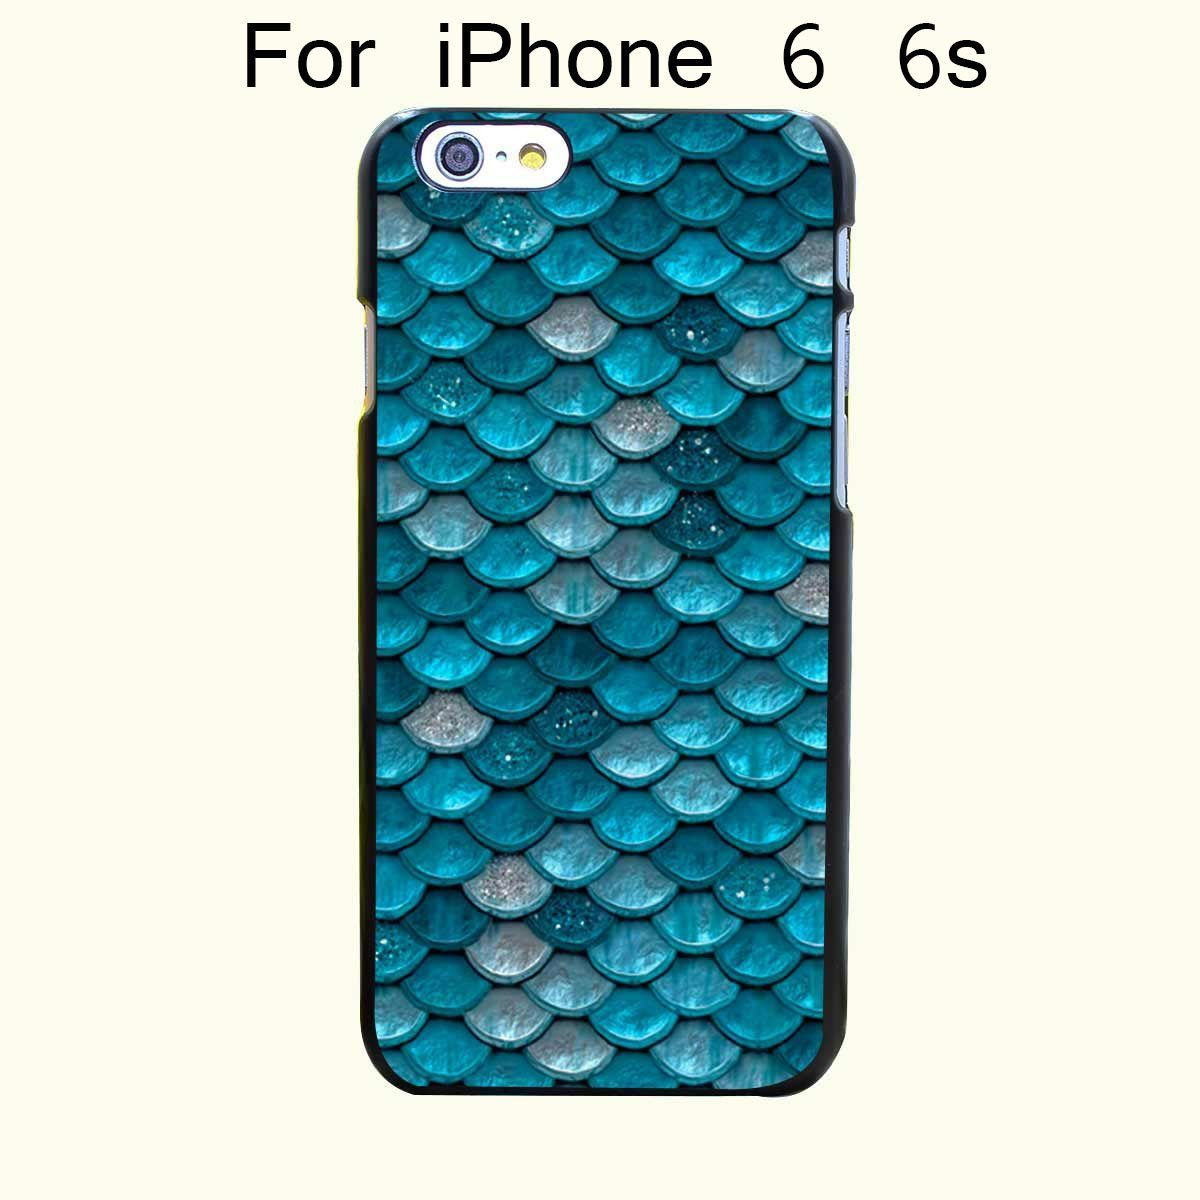 Light Turquoise Sparkling Scales Hard Black Case Cover for iPhone 4 4s 5 5s 5c 6 6s Plus Print on Black Back